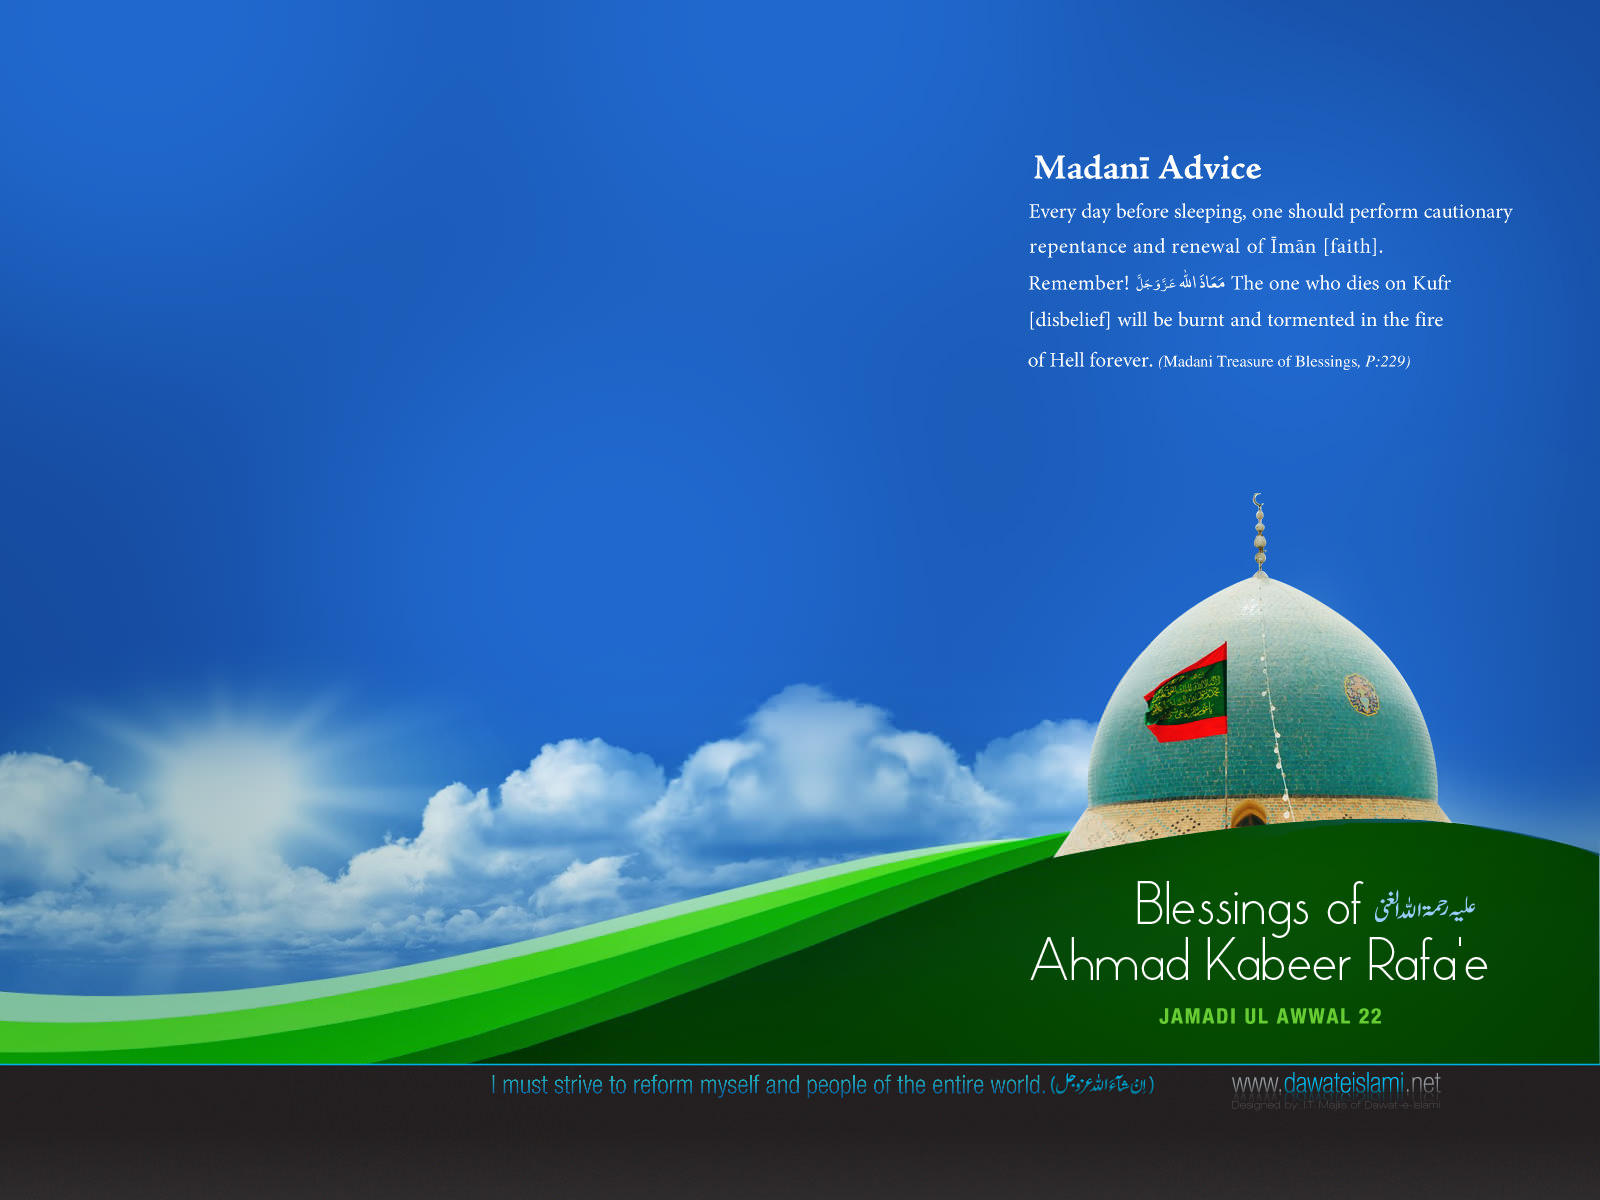 Wallpaper Blessings Of Ahmed Kabeer Rafai